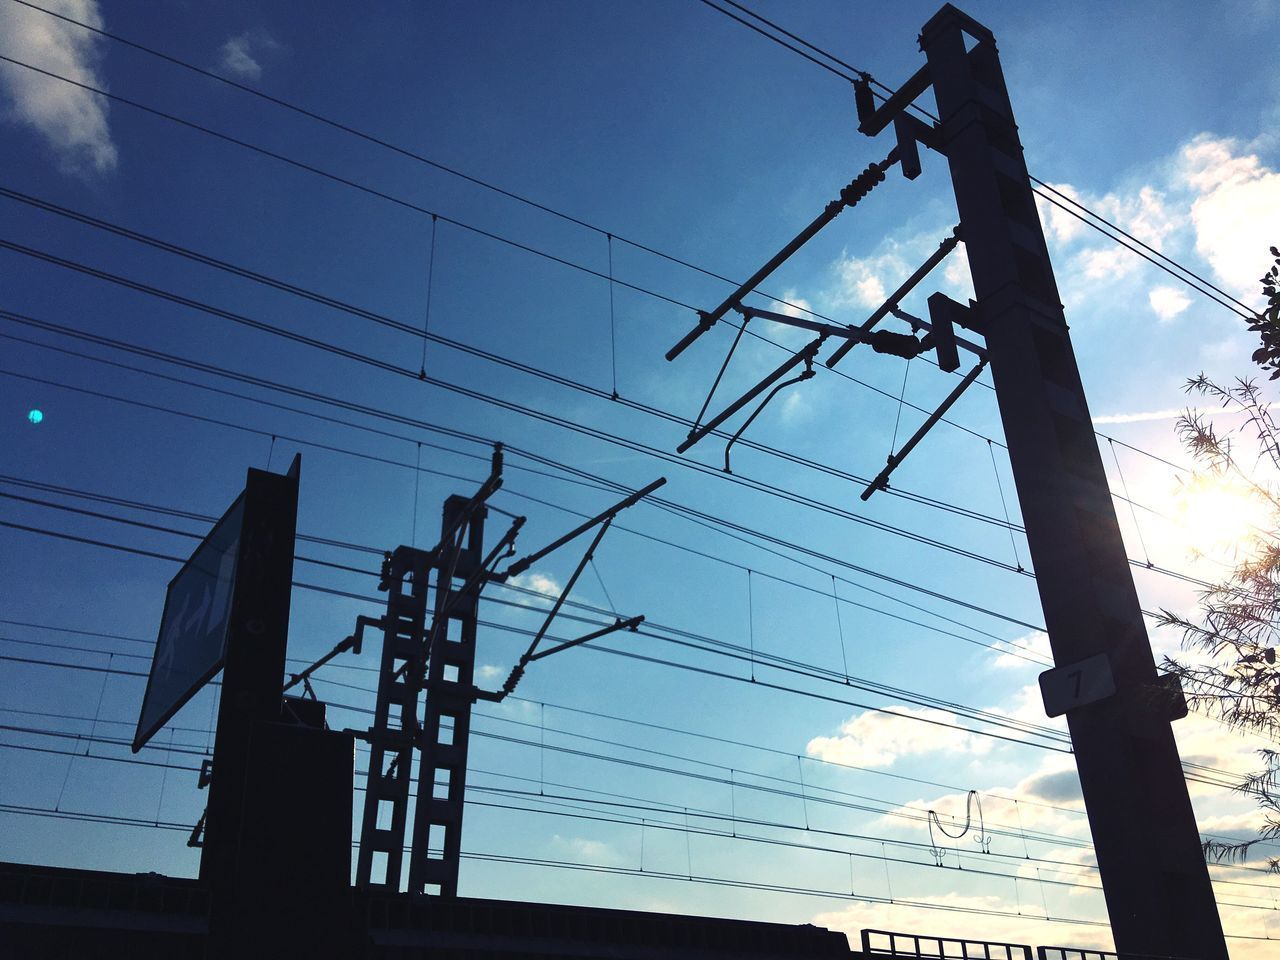 low angle view, cable, sky, electricity, power line, cloud - sky, power supply, connection, nature, silhouette, technology, no people, electricity pylon, fuel and power generation, architecture, built structure, outdoors, sunset, lighting equipment, day, complexity, telephone line